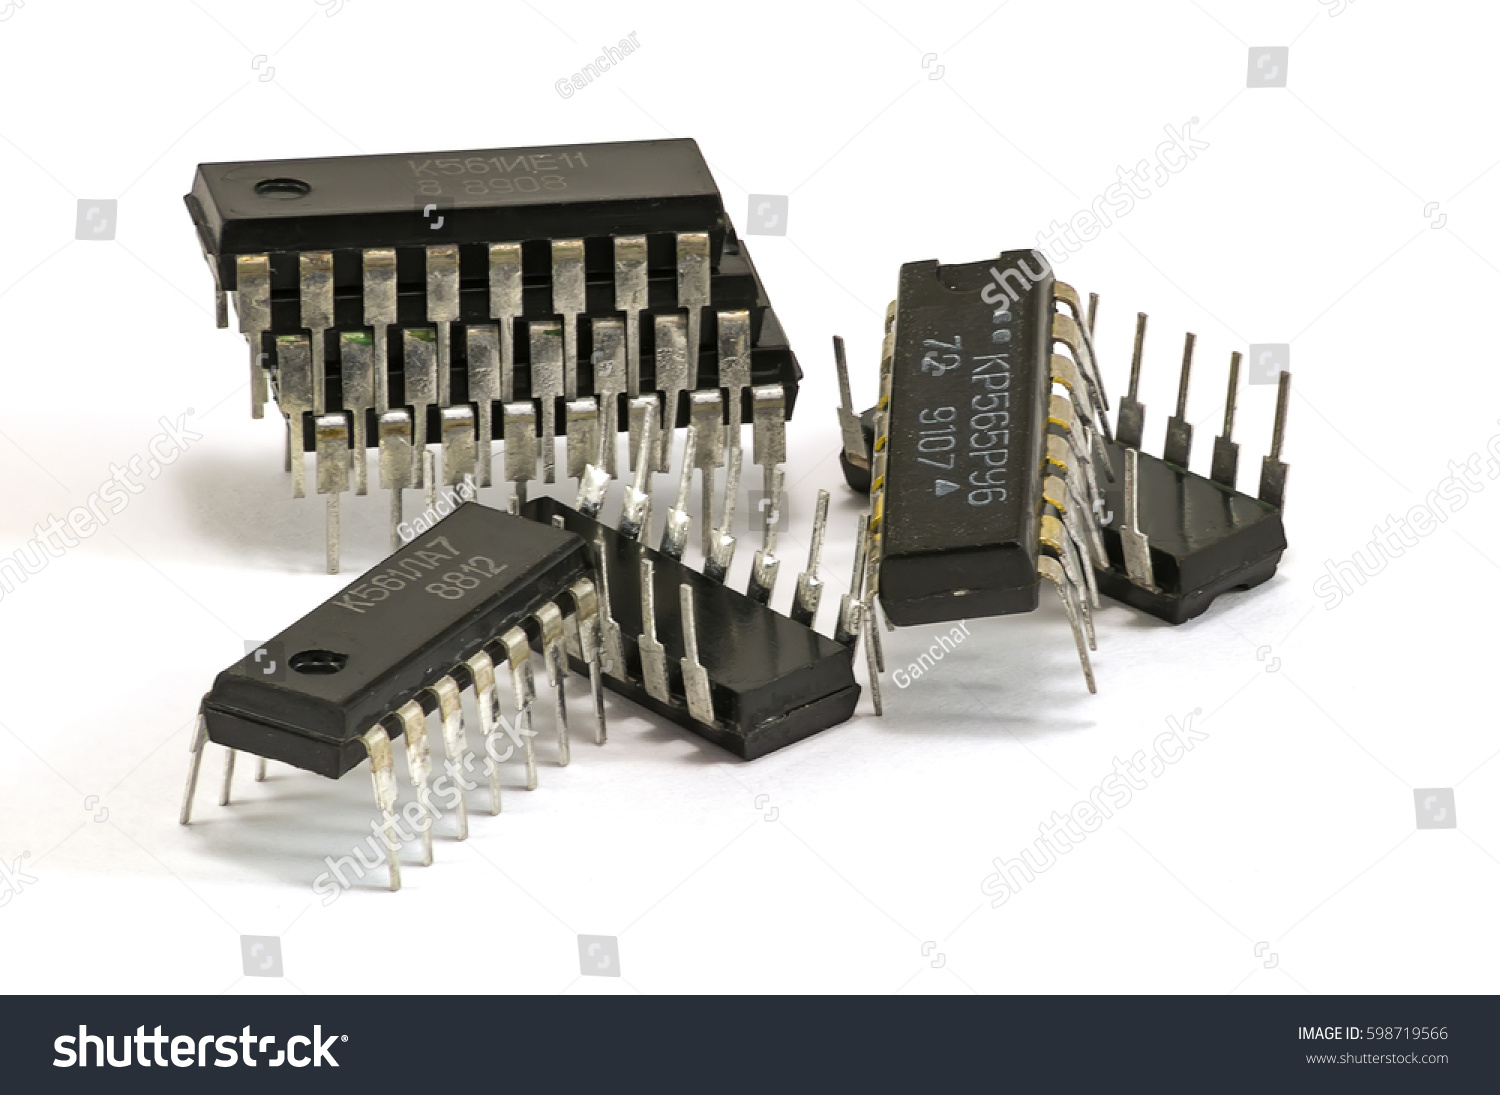 Chip Semiconductor Devices Stock Photo Edit Now 598719566 Circuitry Of An Electronic Calculator Royalty Free Photography For